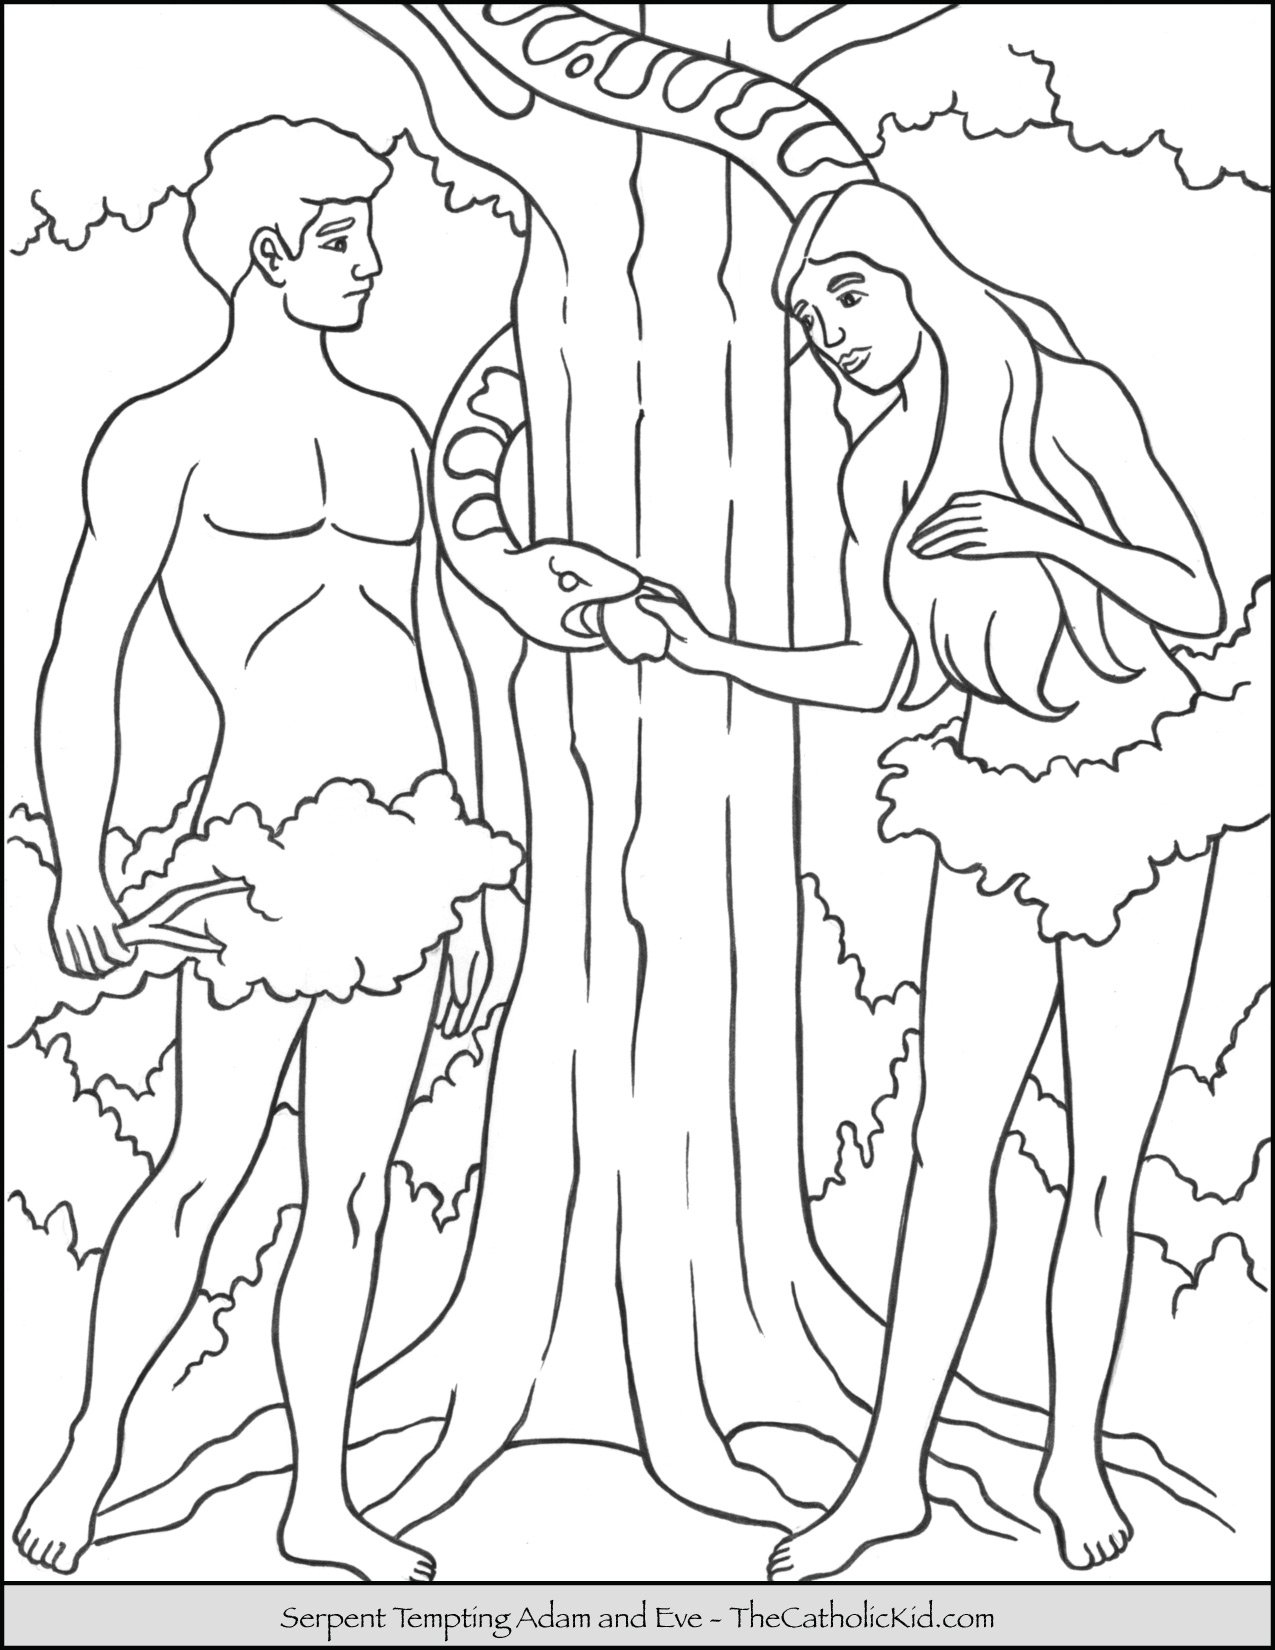 Serpent Tempting Adam Eve Coloring Page